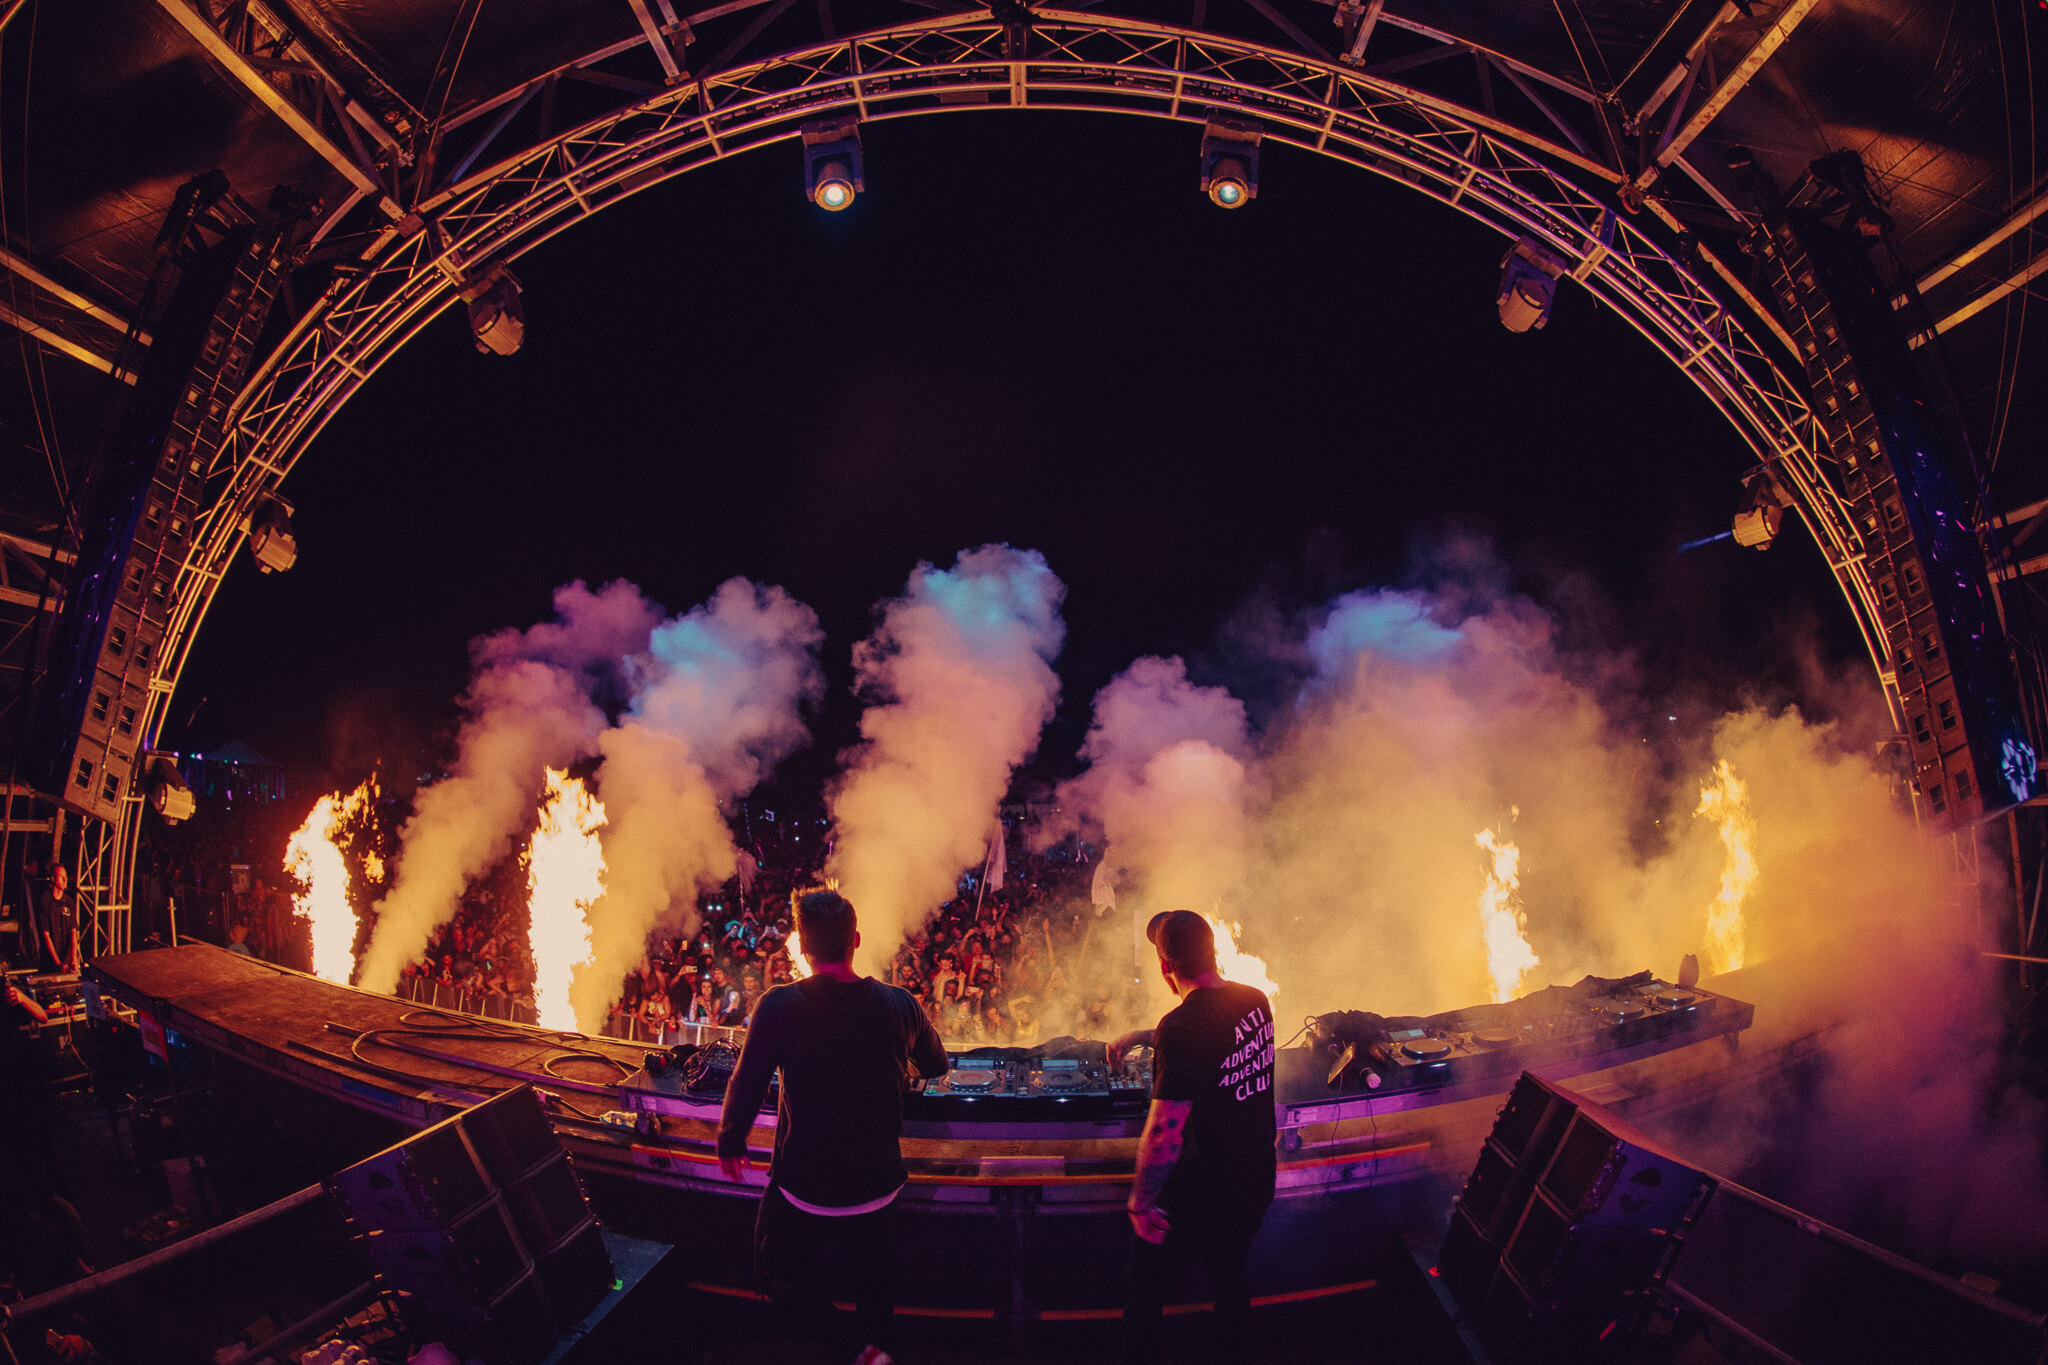 adventure club lights up the stage during their performance